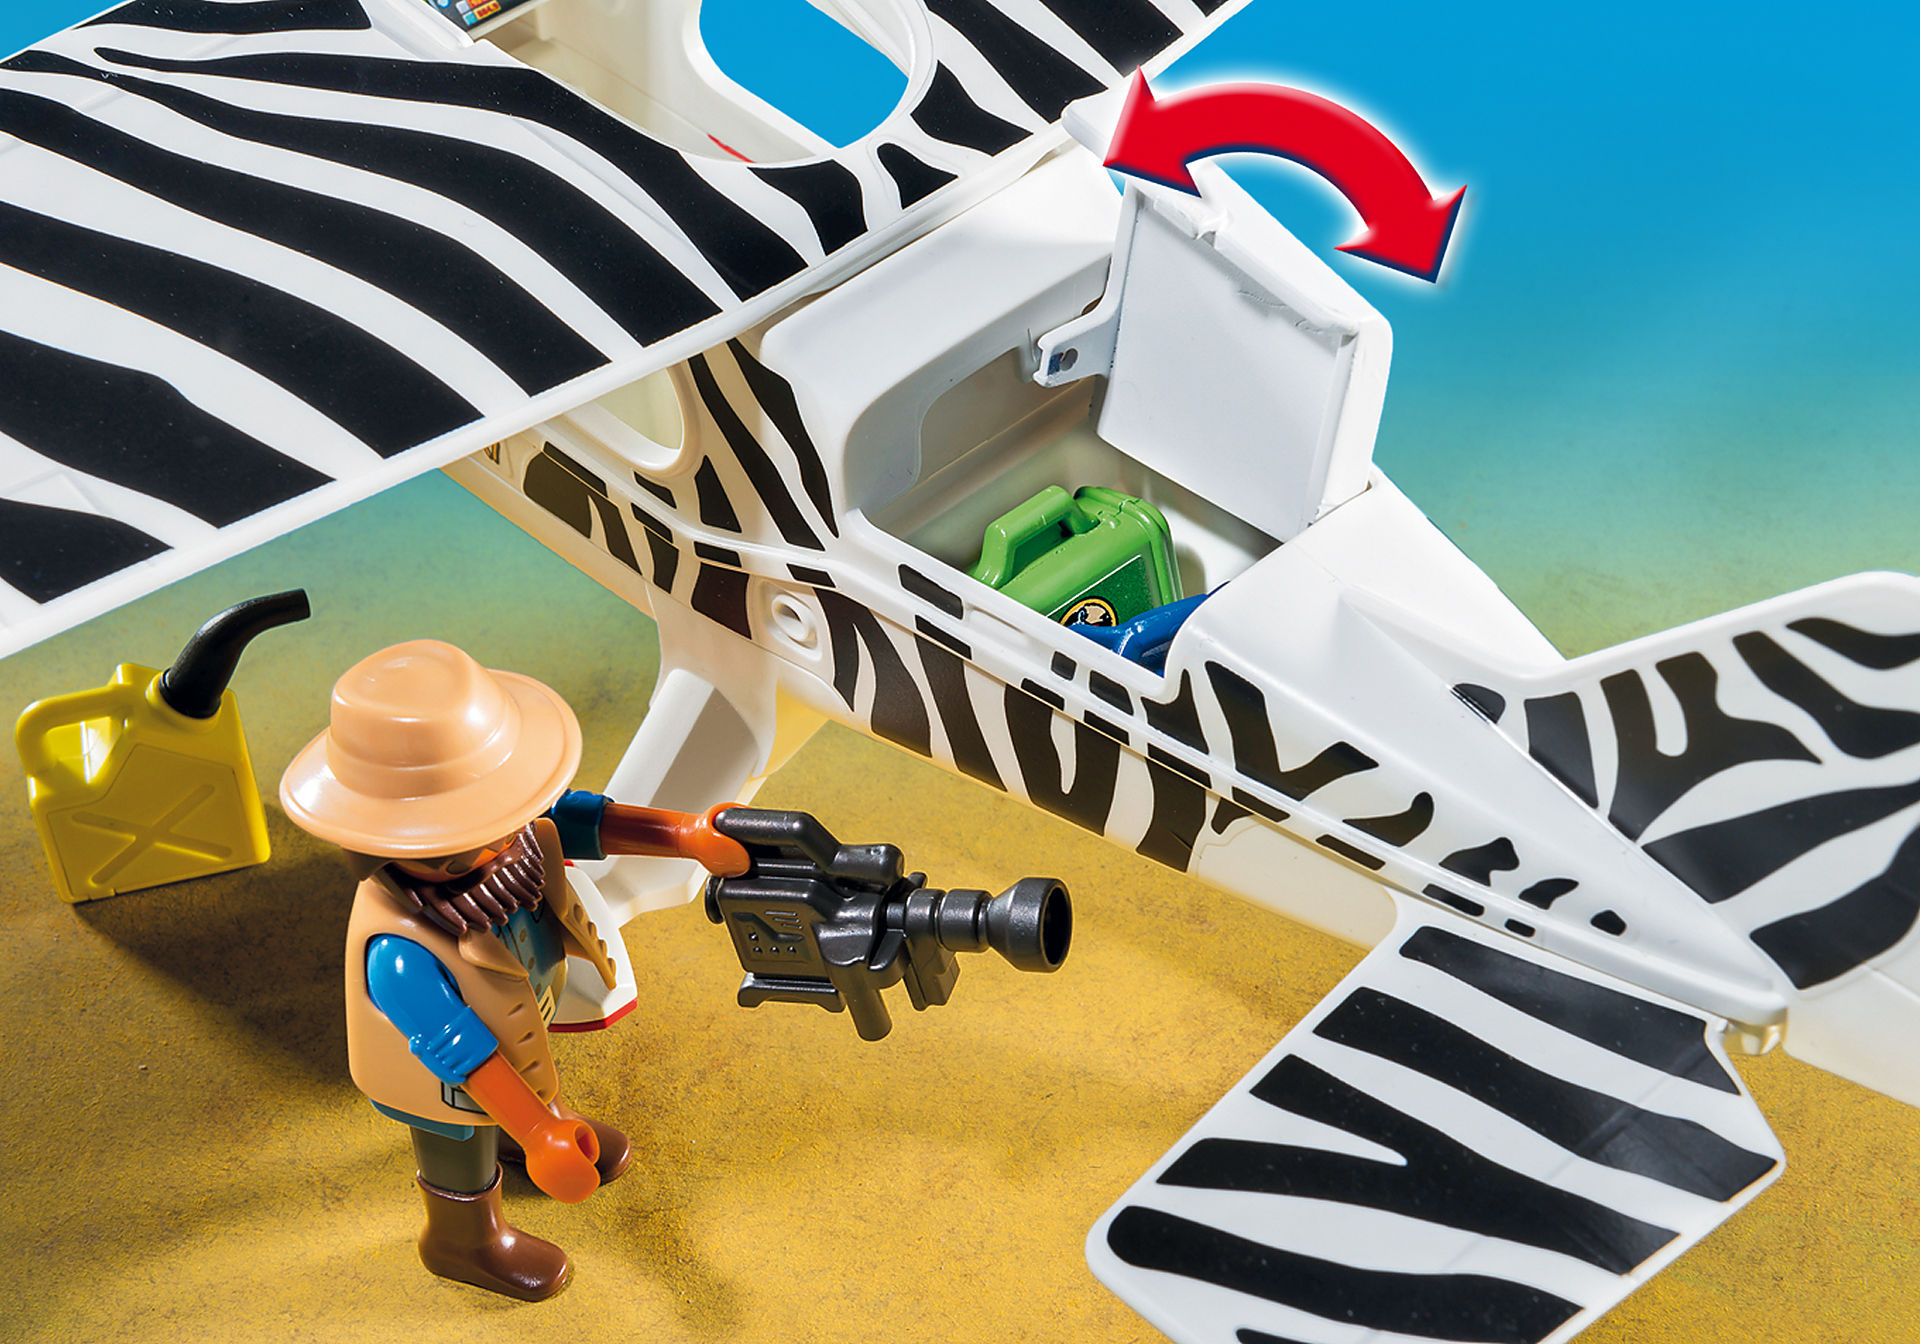 http://media.playmobil.com/i/playmobil/6938_product_extra1/Avion avec explorateurs